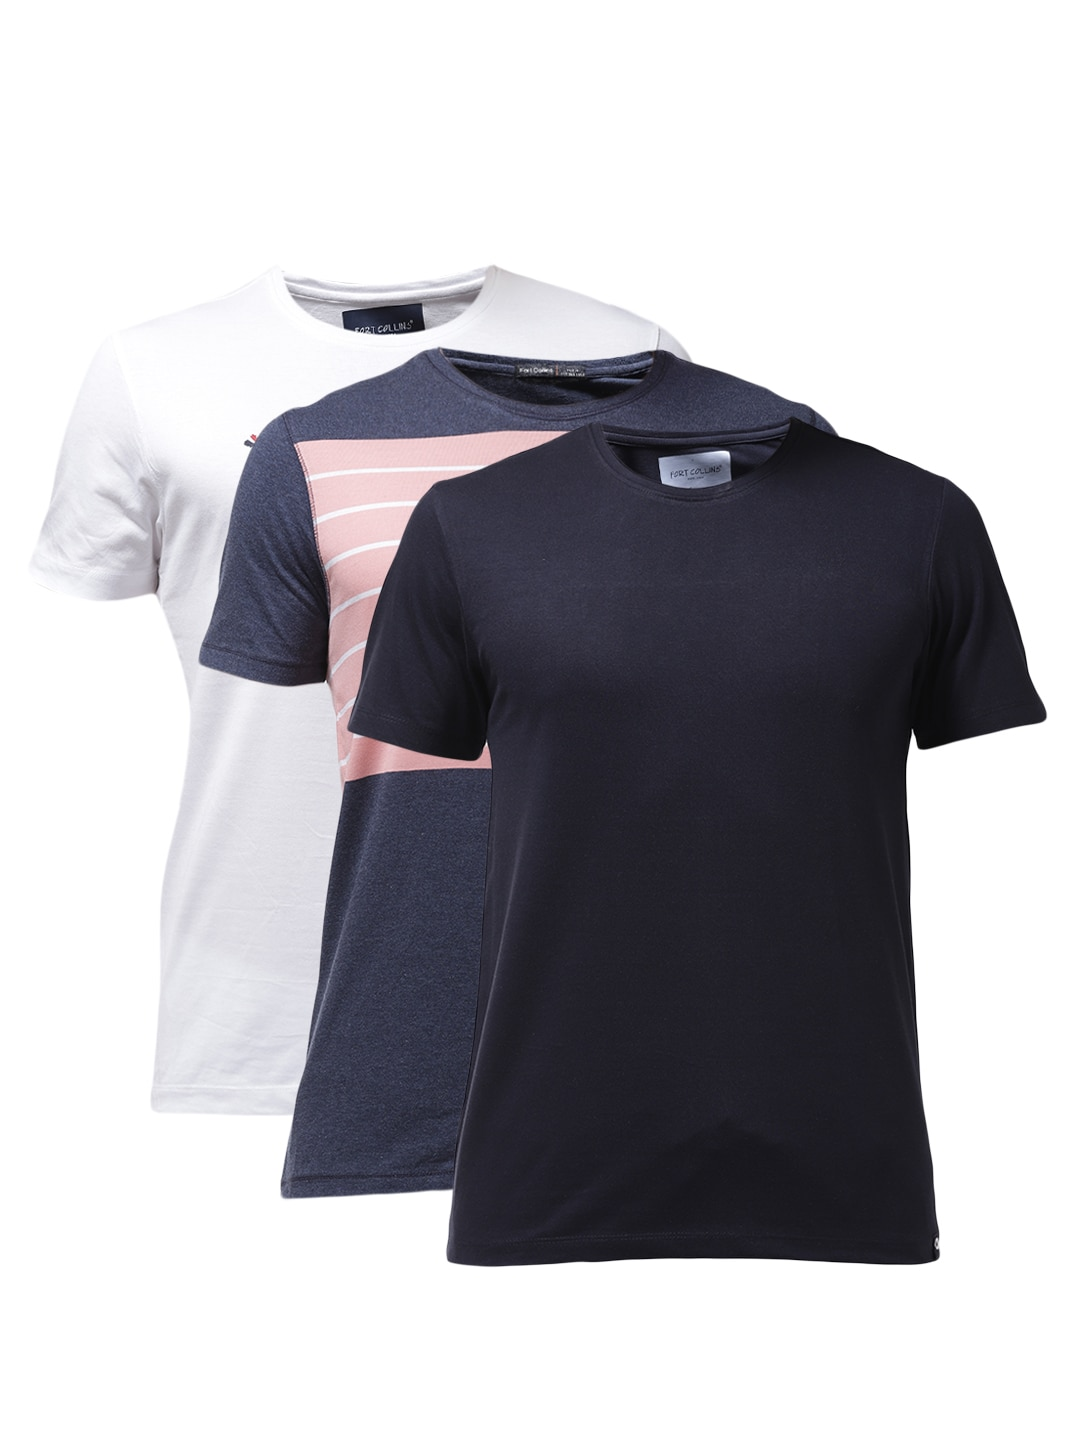 f9d65f719ba 3 Pack Tshirts - Buy 3 Pack Tshirts online in India